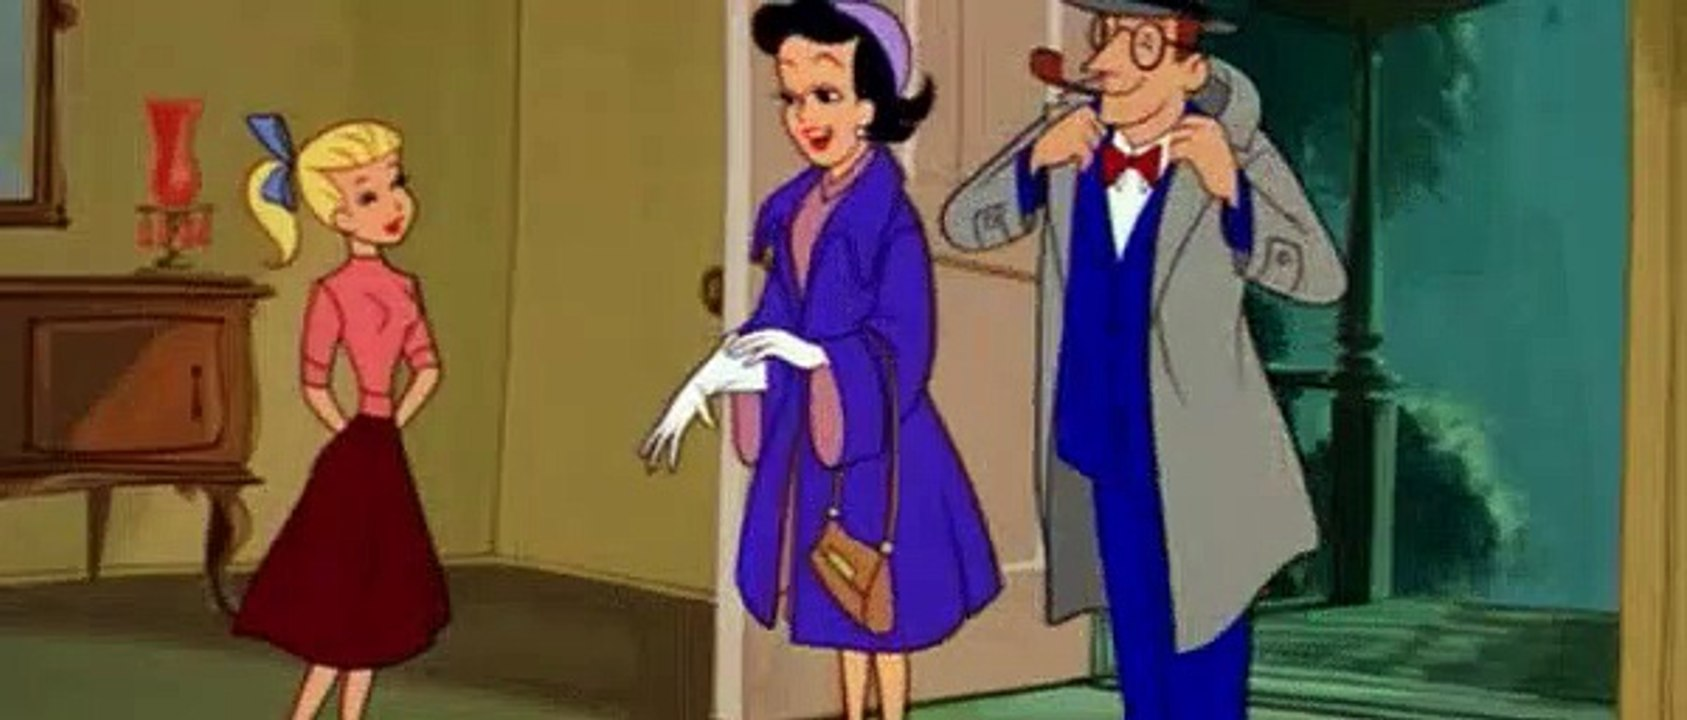 tom and jerry the classic collection season 1 episode 100